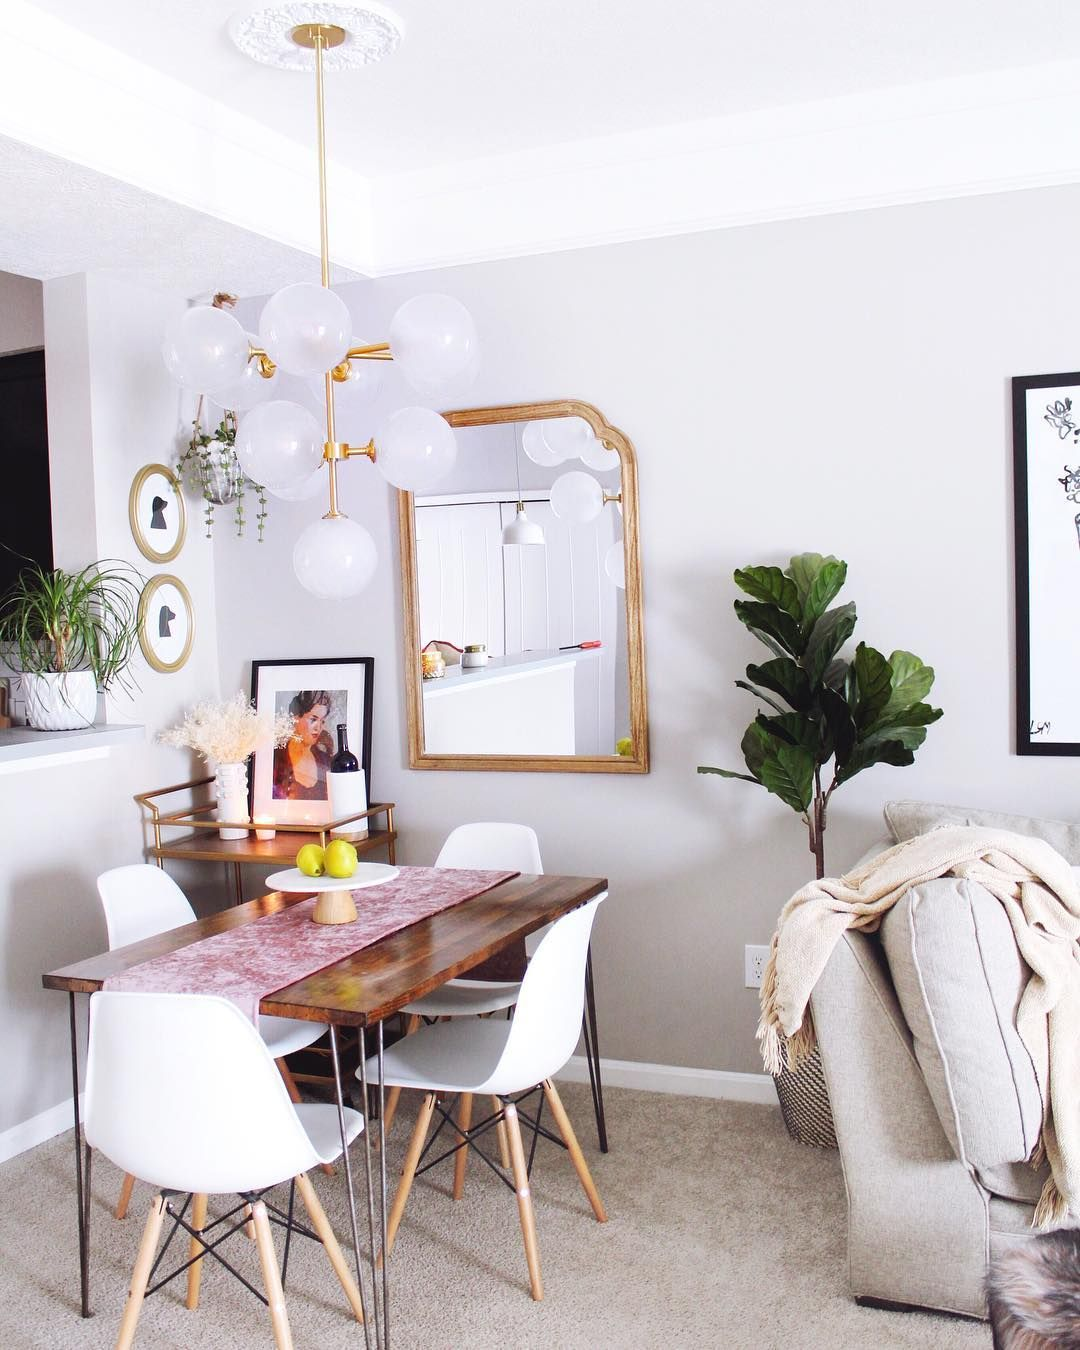 6 Brilliant Ways To Make Space For A Dining Table In The Teensiest Of Living Rooms In 2020 Dining Room Small Small Room Design Apartment Dining Room